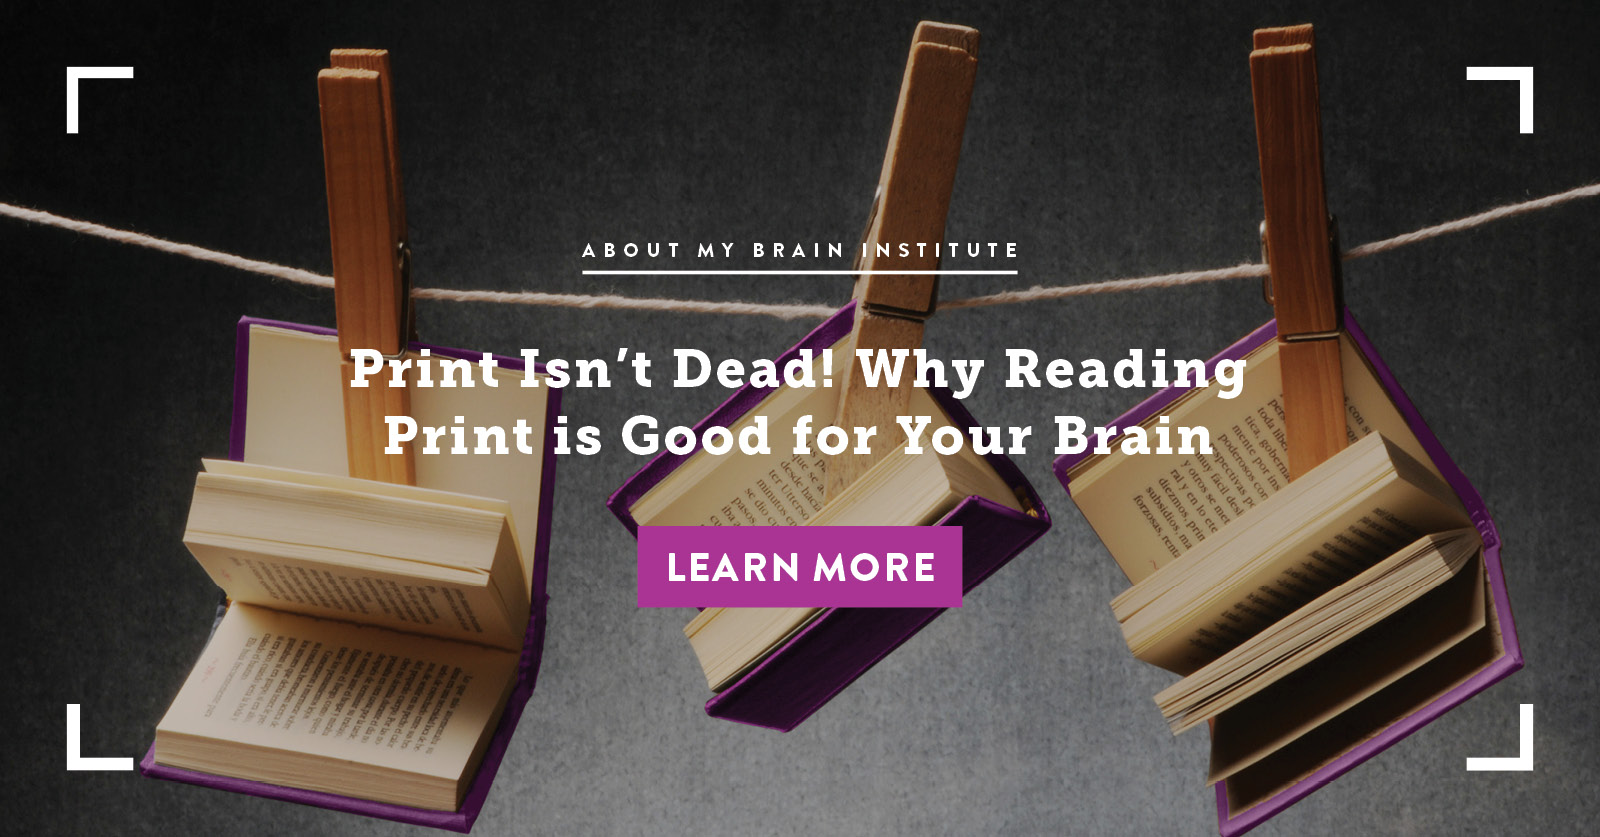 Print Isn't Dead! Why Reading Print is Good for Your Brain